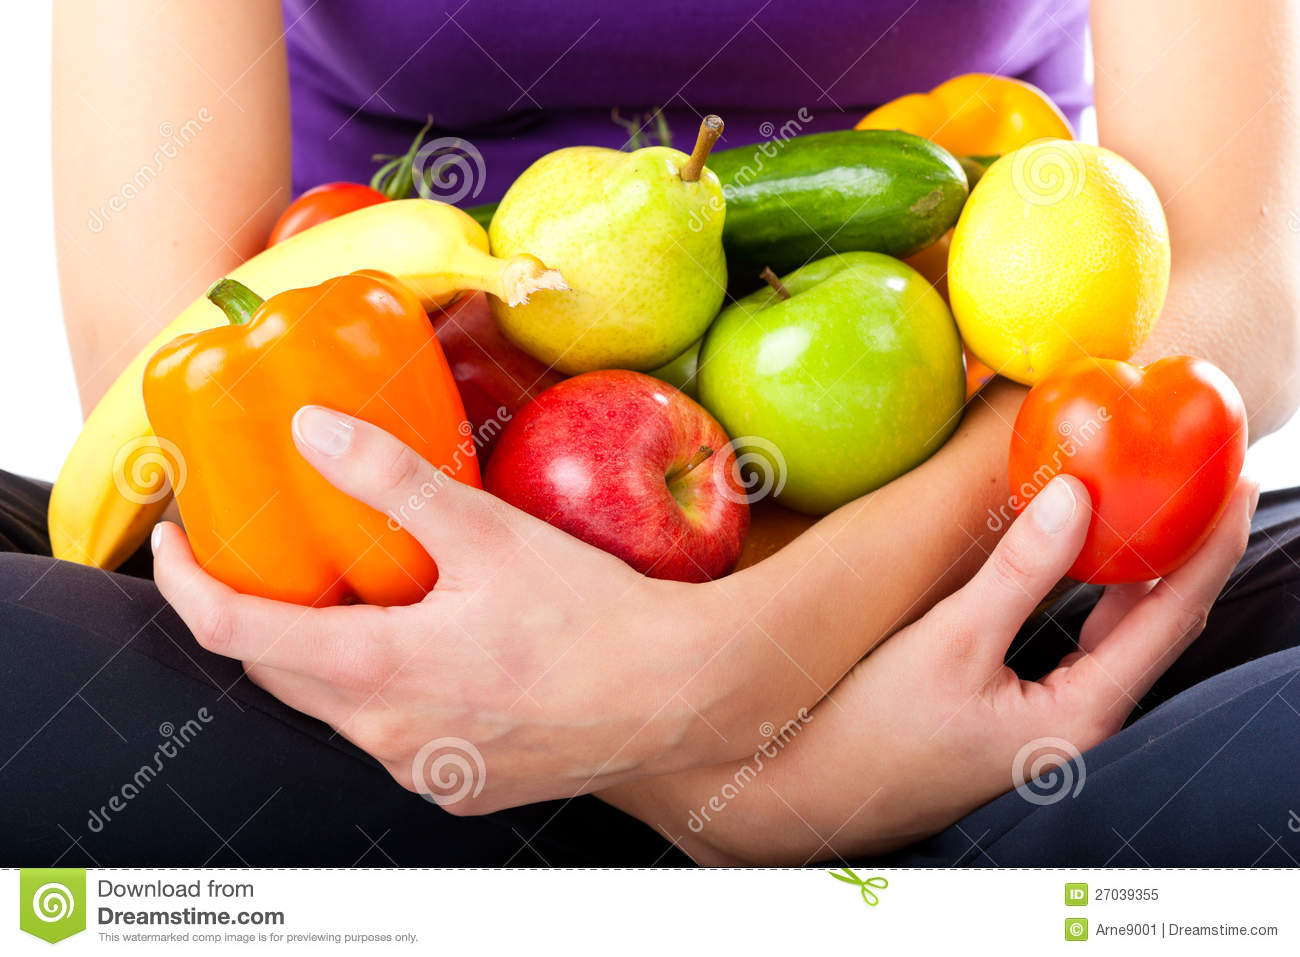 Healthy nutrition - young woman with fruits